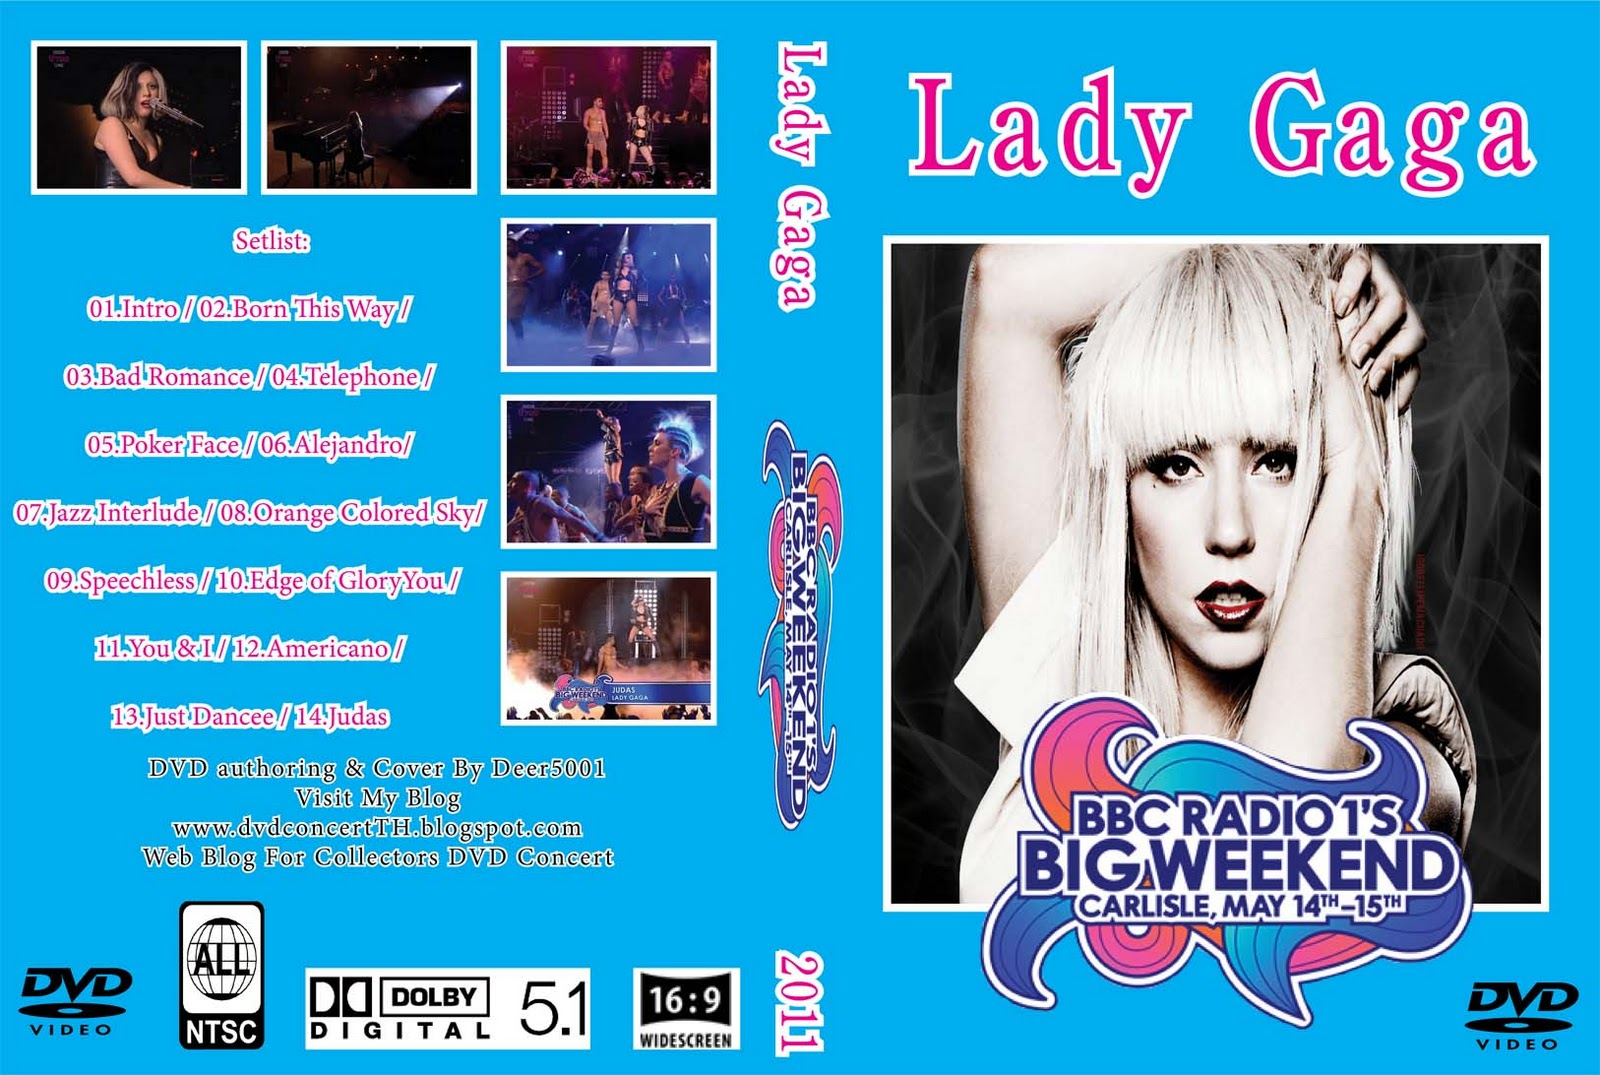 http://3.bp.blogspot.com/-T_8G21-_uhQ/Tox684mbDMI/AAAAAAAAD7U/VIbnlLSVes8/s1600/DVD+Cover+Low+Quality+NTSC+-+Lady+Gaga+-+2011-05-15+-+Live+at+BBC+Radio1%2527s+Big+Weekend.jpg